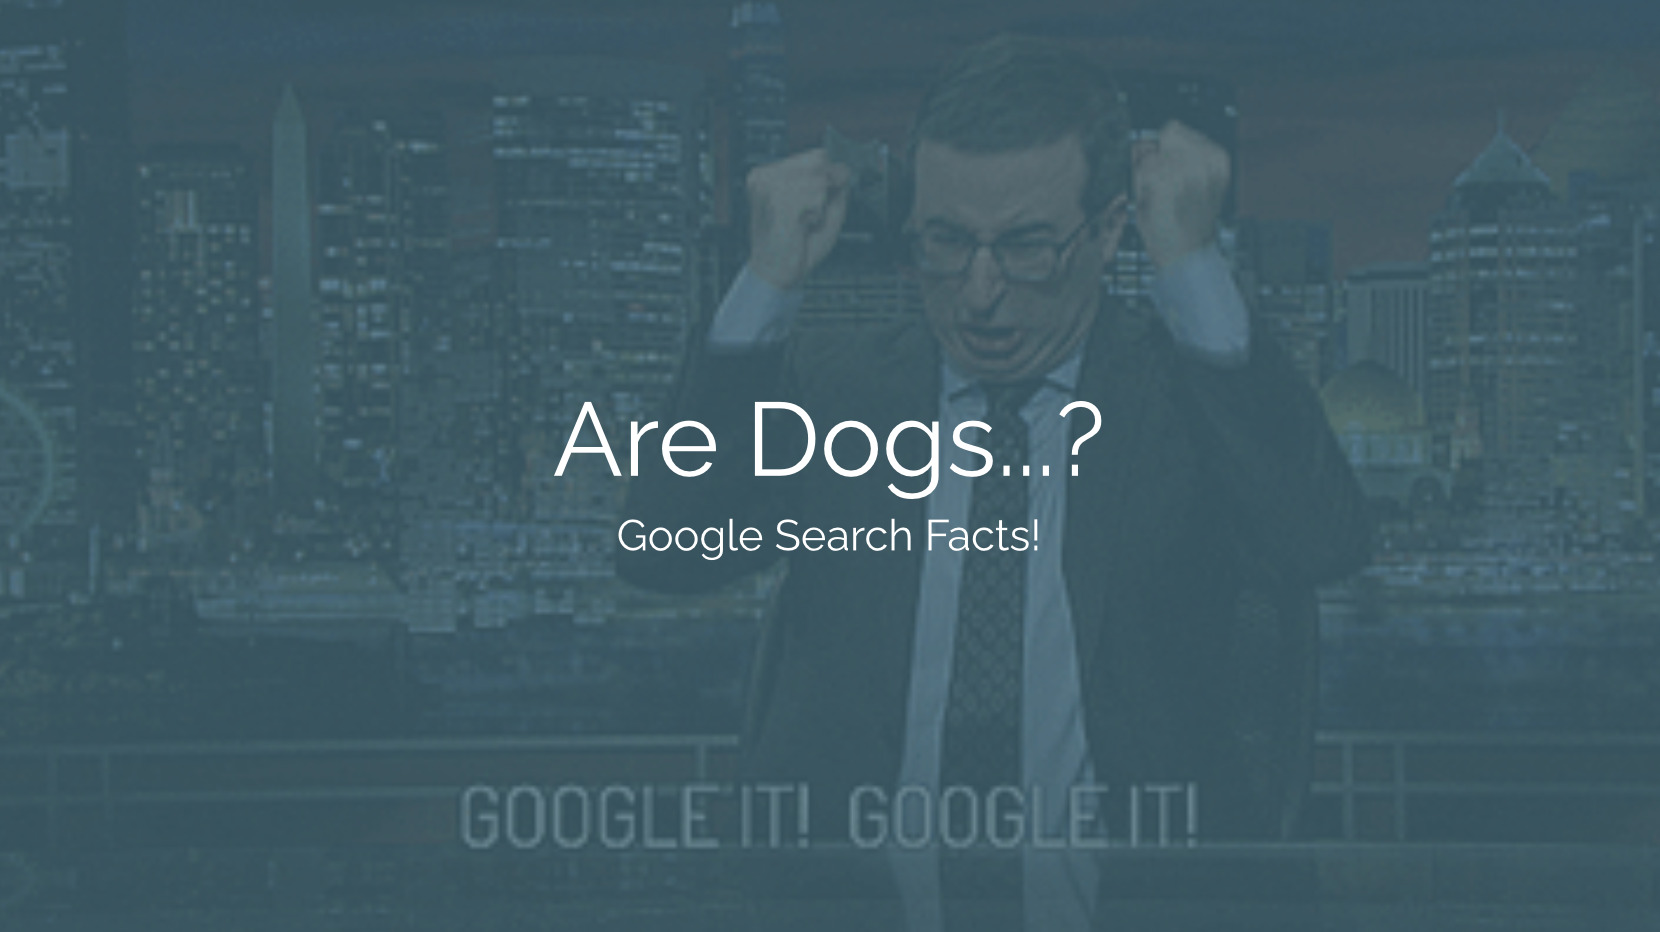 """Fun task? Maybe too boring for the kids at that workplace party. Worry not, we've got just the thing! Google Search Facts Presentation separates your audience into teams and challenges them to answer different questions about popular topics like """"Are dogs colorblind?"""" or """"What is an emoji?"""". It might sound a little boring but this application will keep everyone on their toes rooted in product knowledge."""